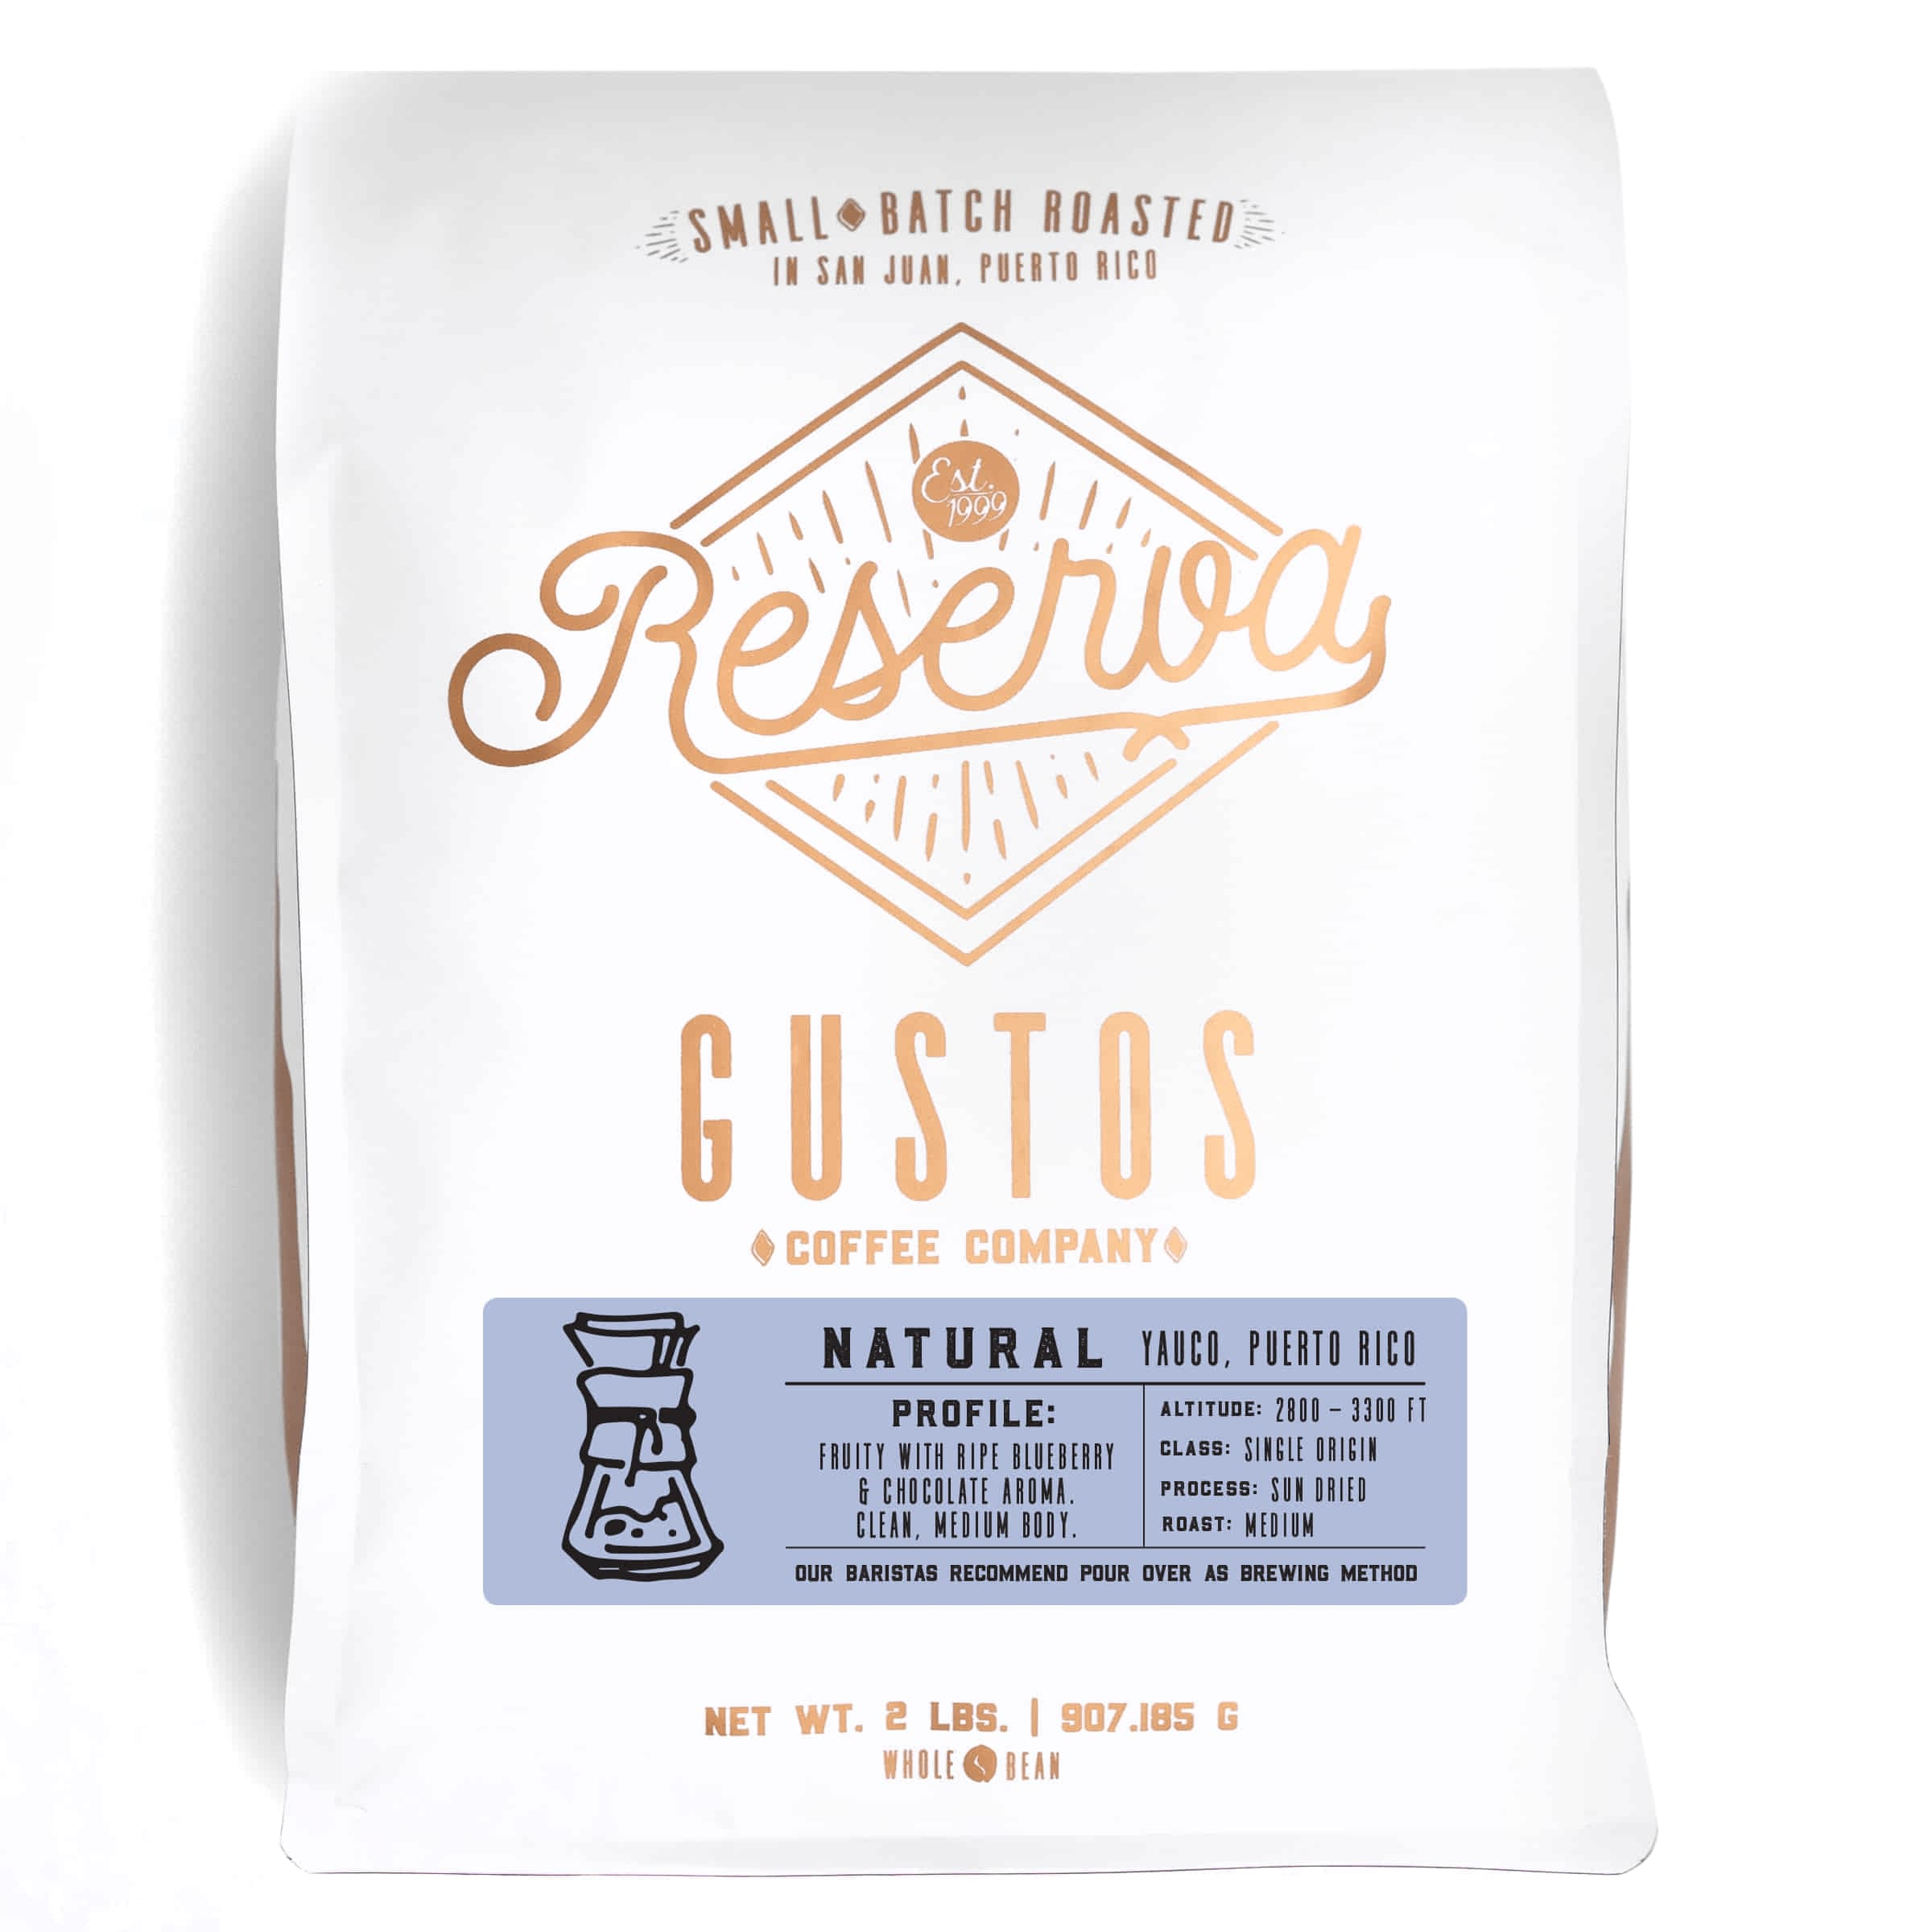 2lb bag of Specialty Coffee Natural Process Cafe Yauco PR single origin by Gustos Coffee Co